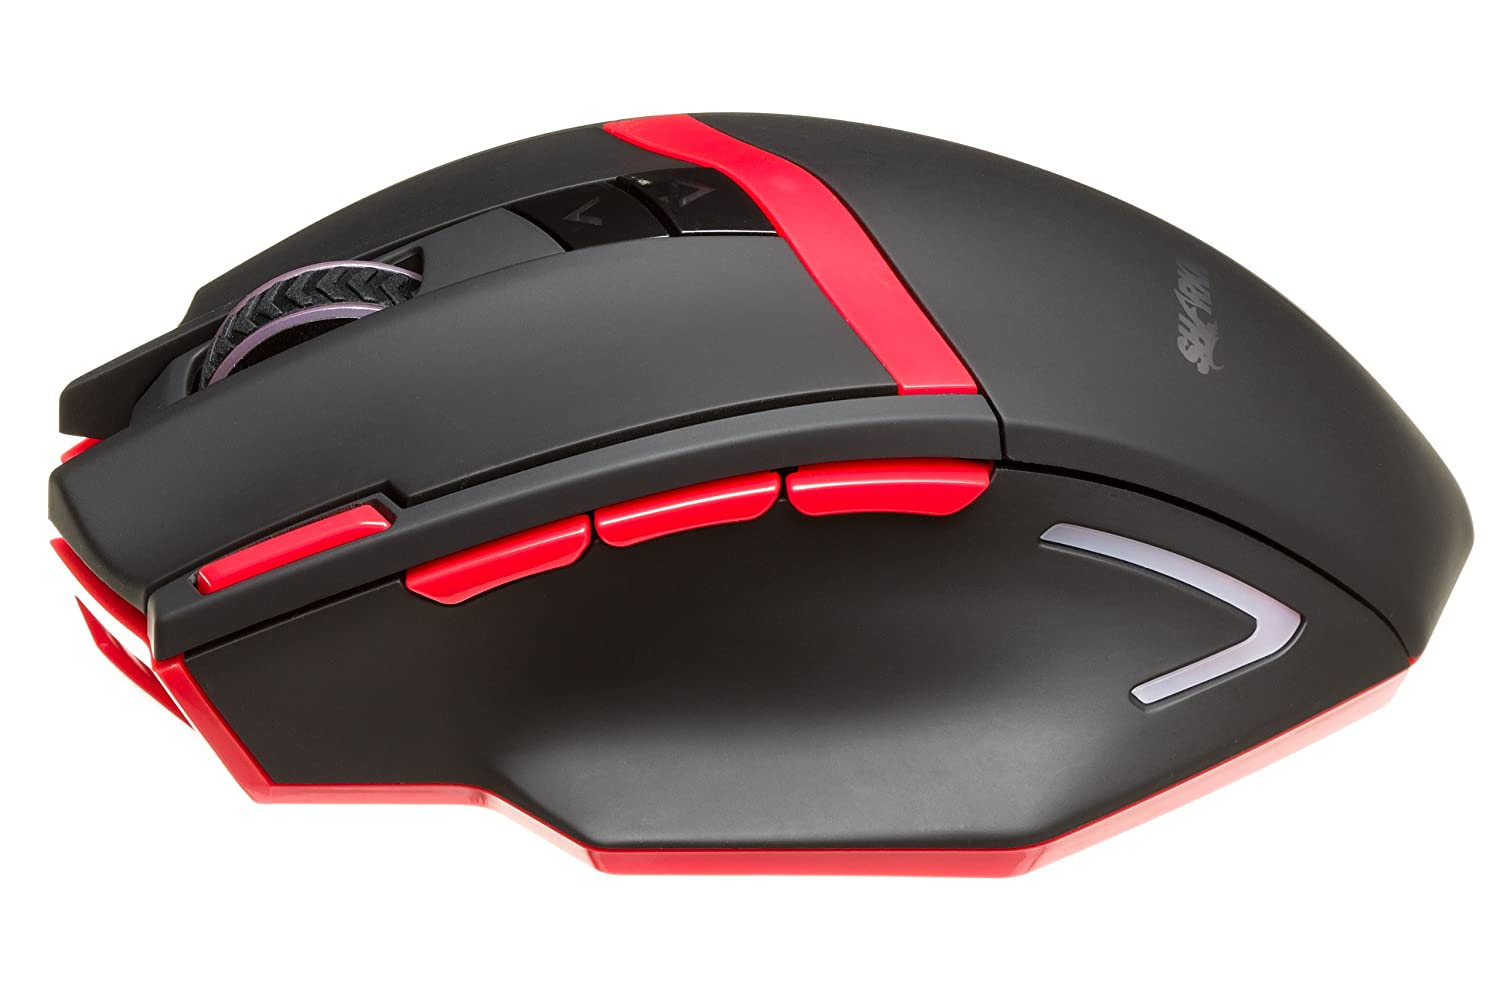 eac9ddd0916 Amazon.com: SHARKK® Wireless Gaming Mouse 2400 DPI High Precision Optical  Mouse for PC, 9 Buttons, 12 Month Battery Life.: Video Games